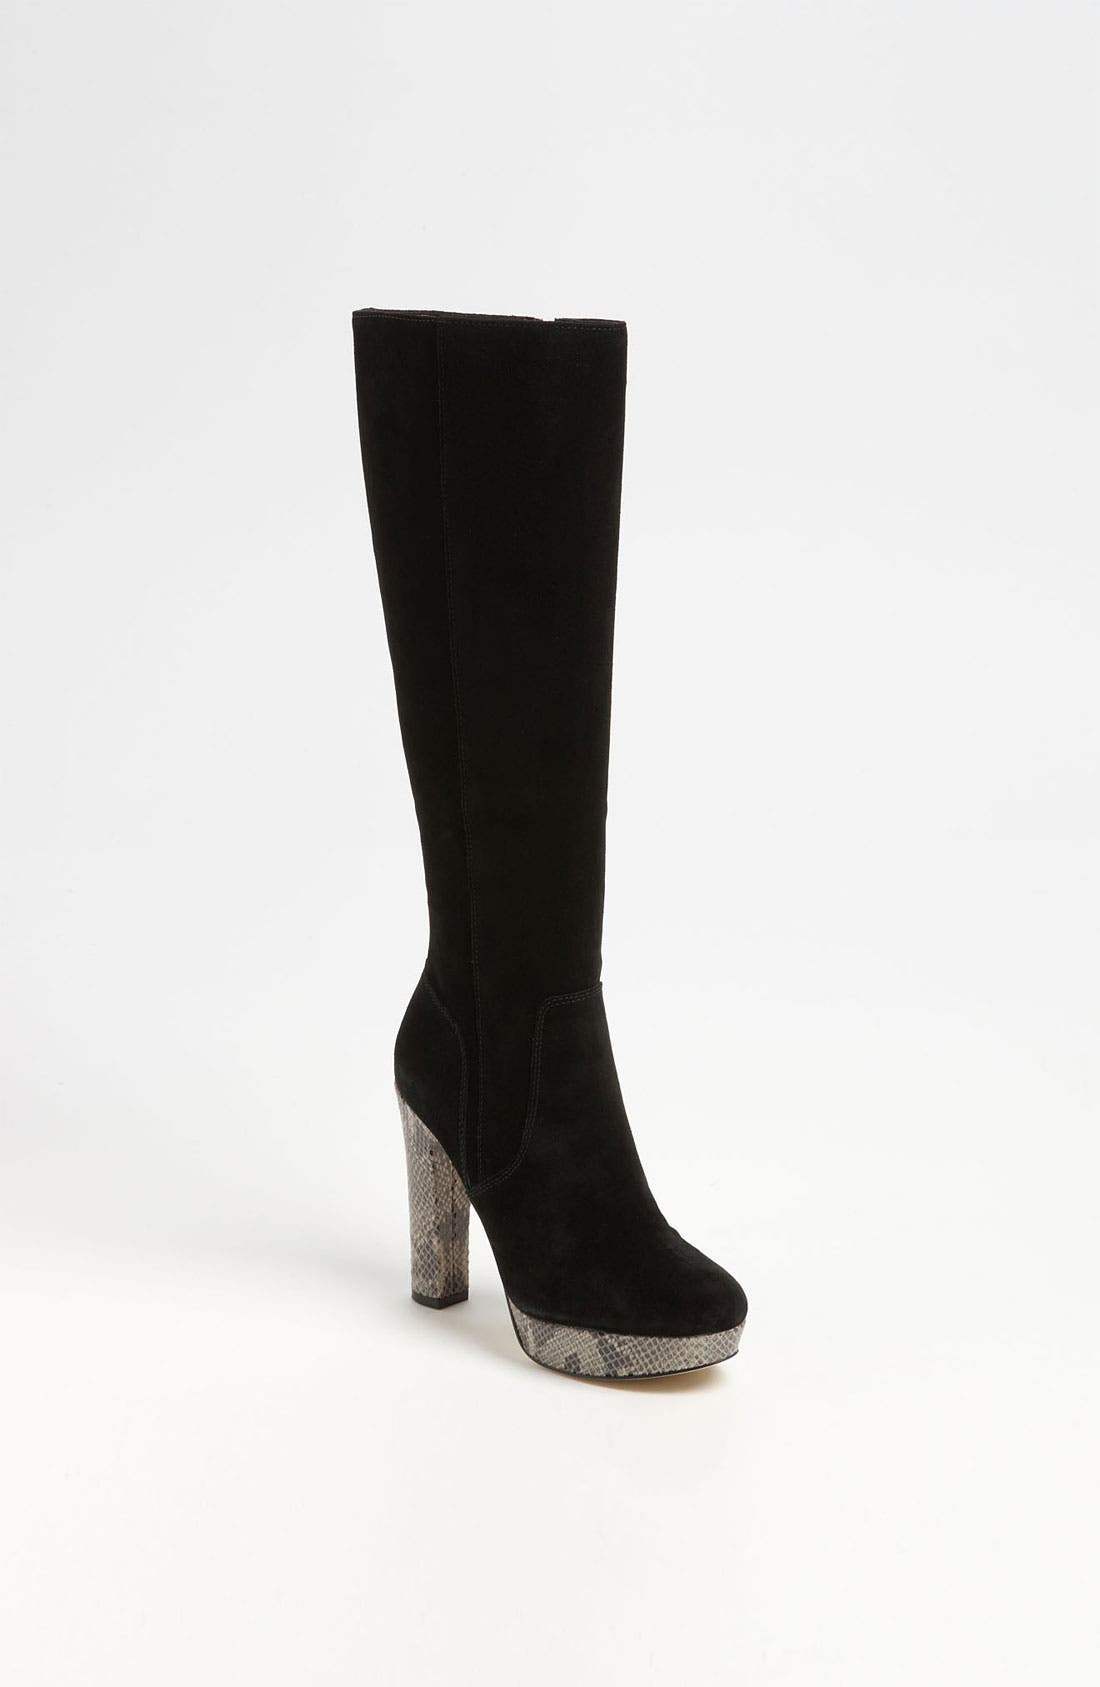 Alternate Image 1 Selected - MICHAEL Michael Kors 'Lesley' Boot